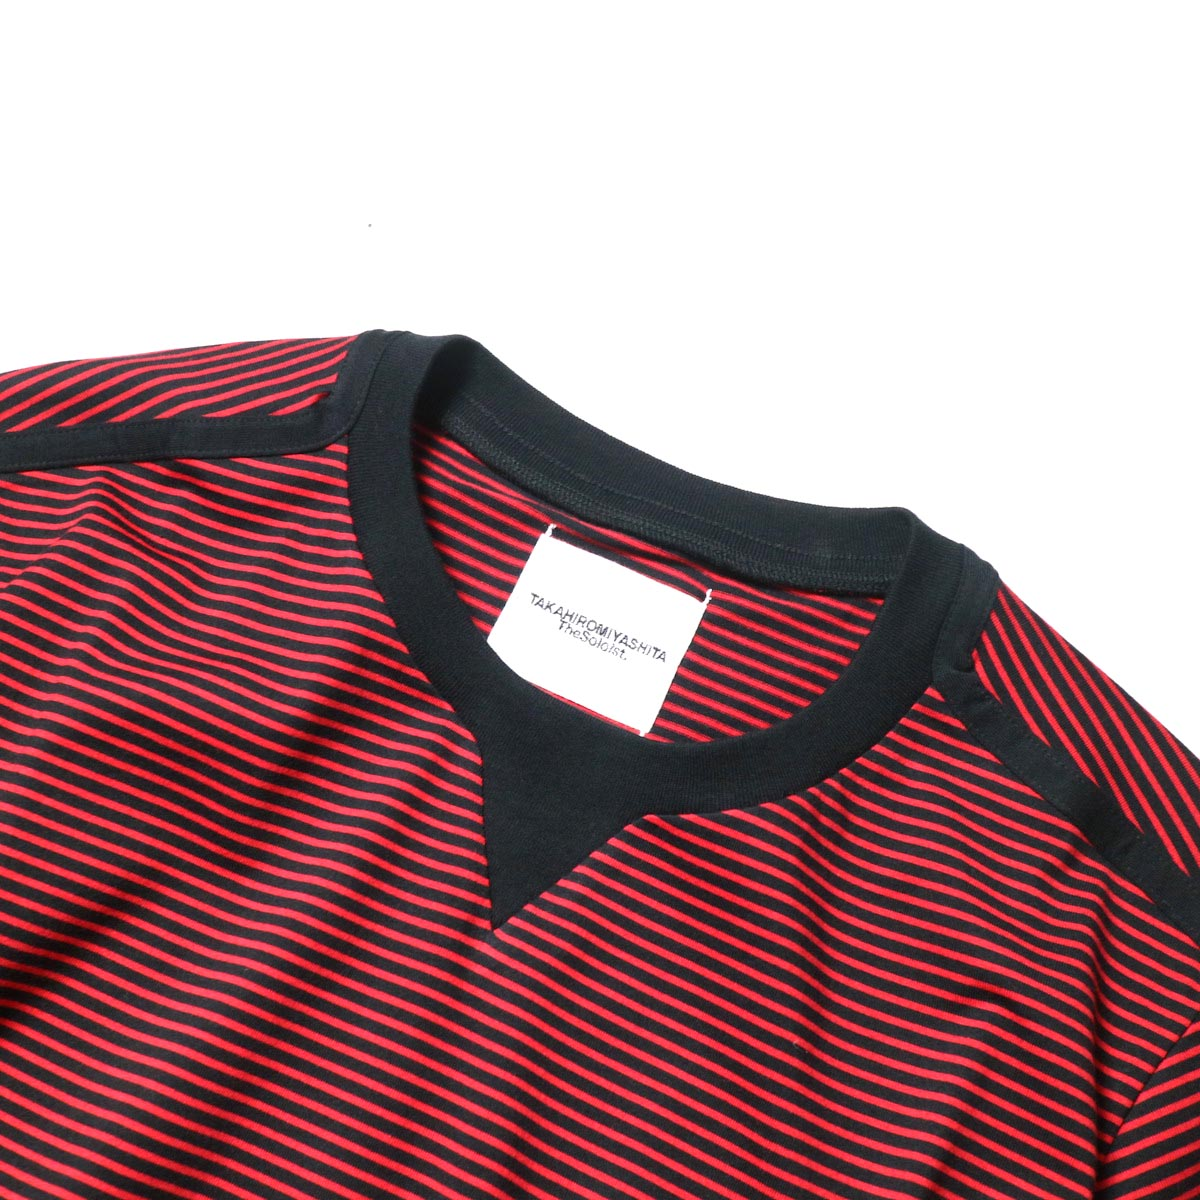 The Soloist / swc.0009a crew neck s/s striped tee. (Black × Red)ネック